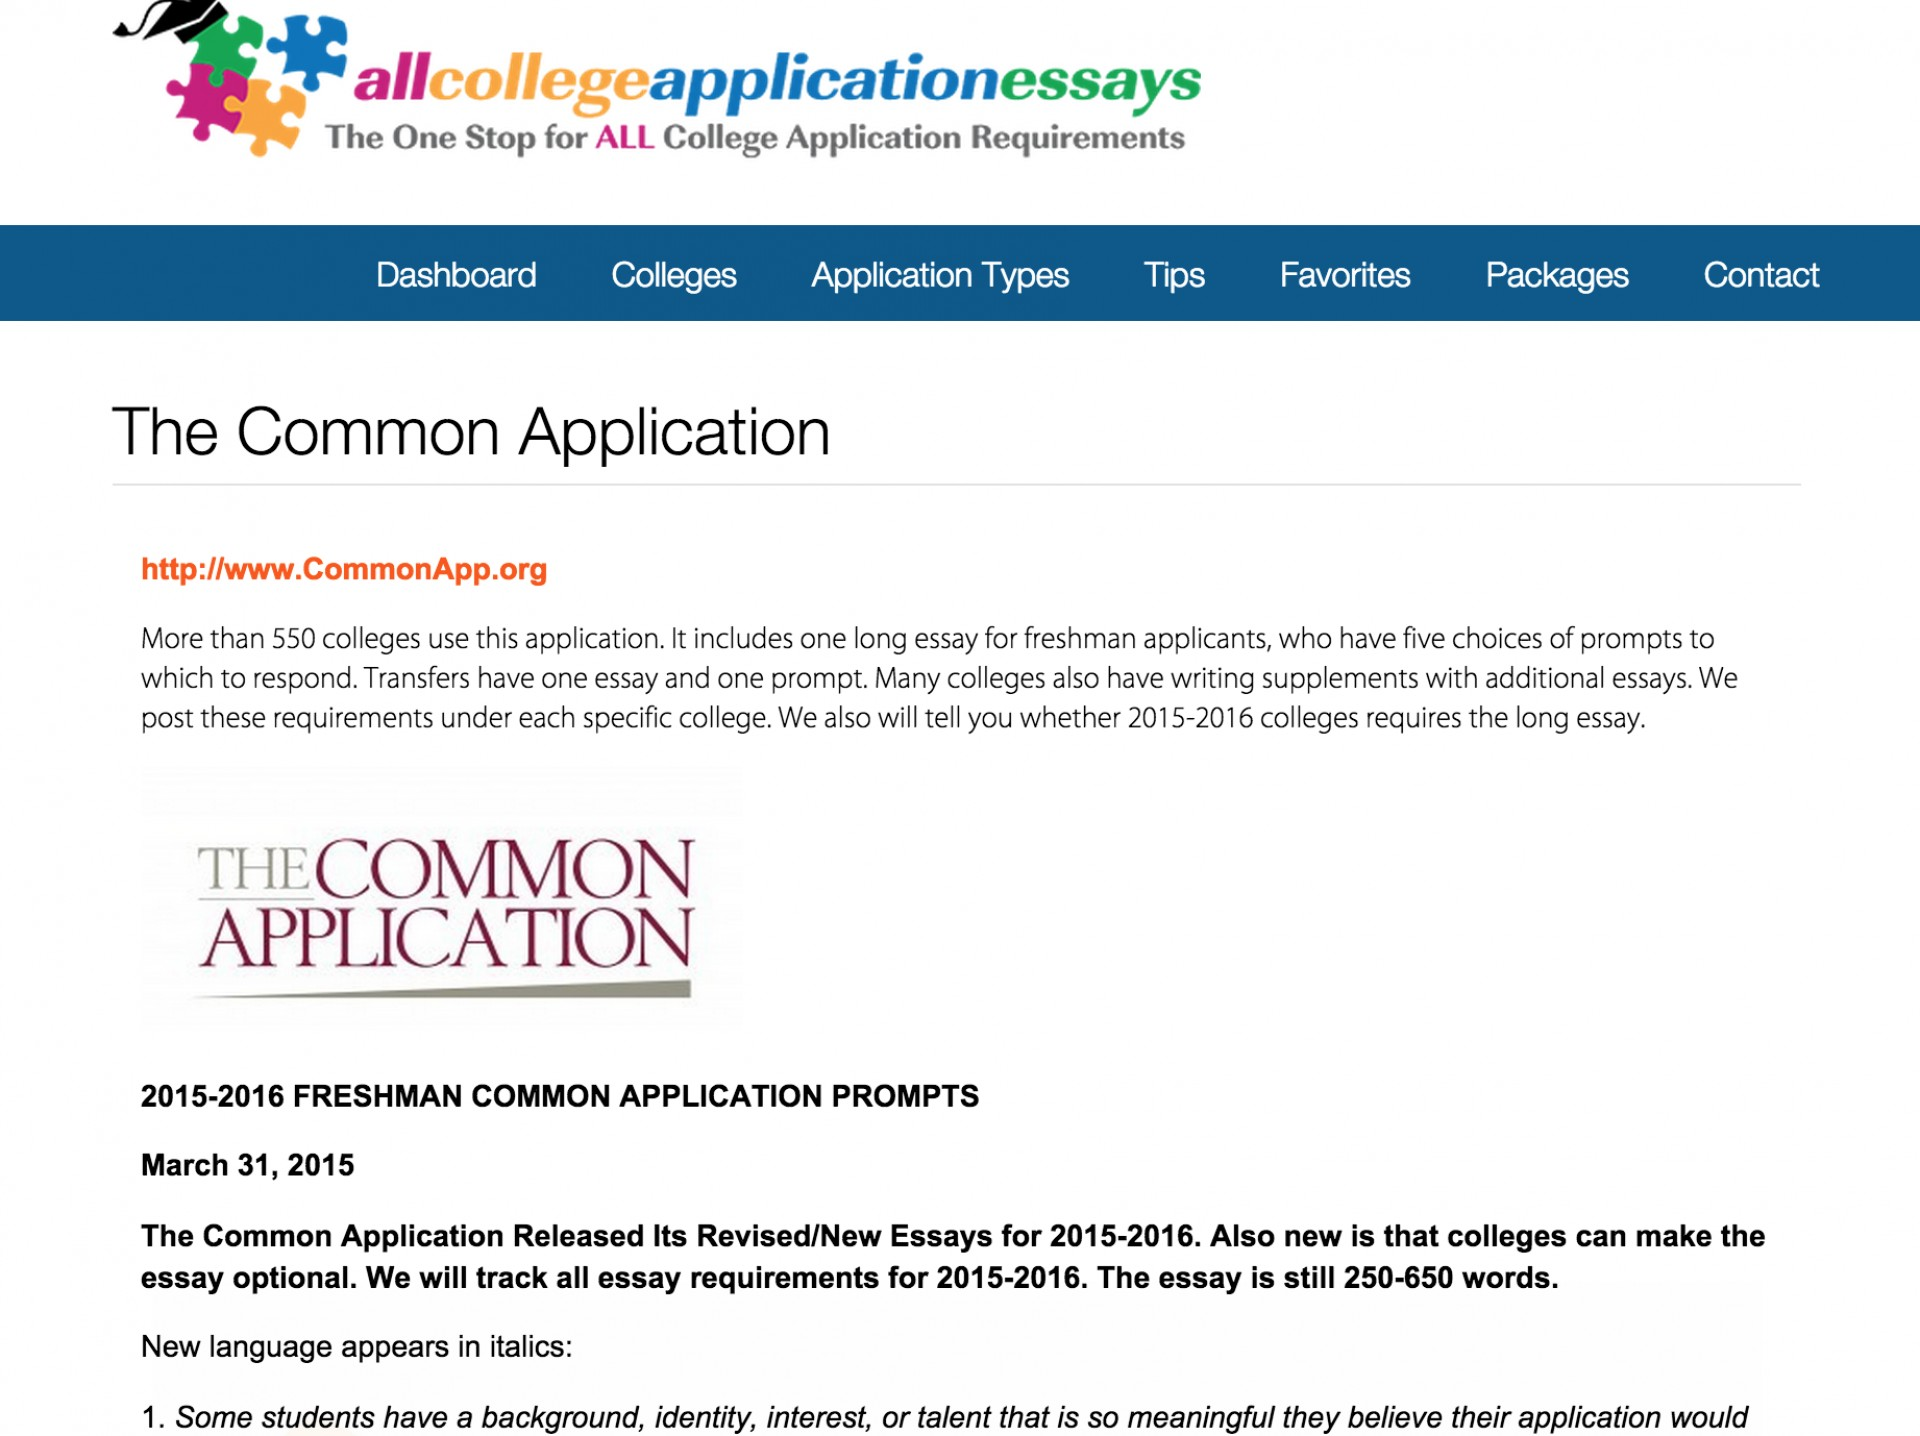 016 Common App Essay Prompt Example Essays Prompts And Commentary All College Topics Screen Shot Examples Unusual 1 3 4 1920